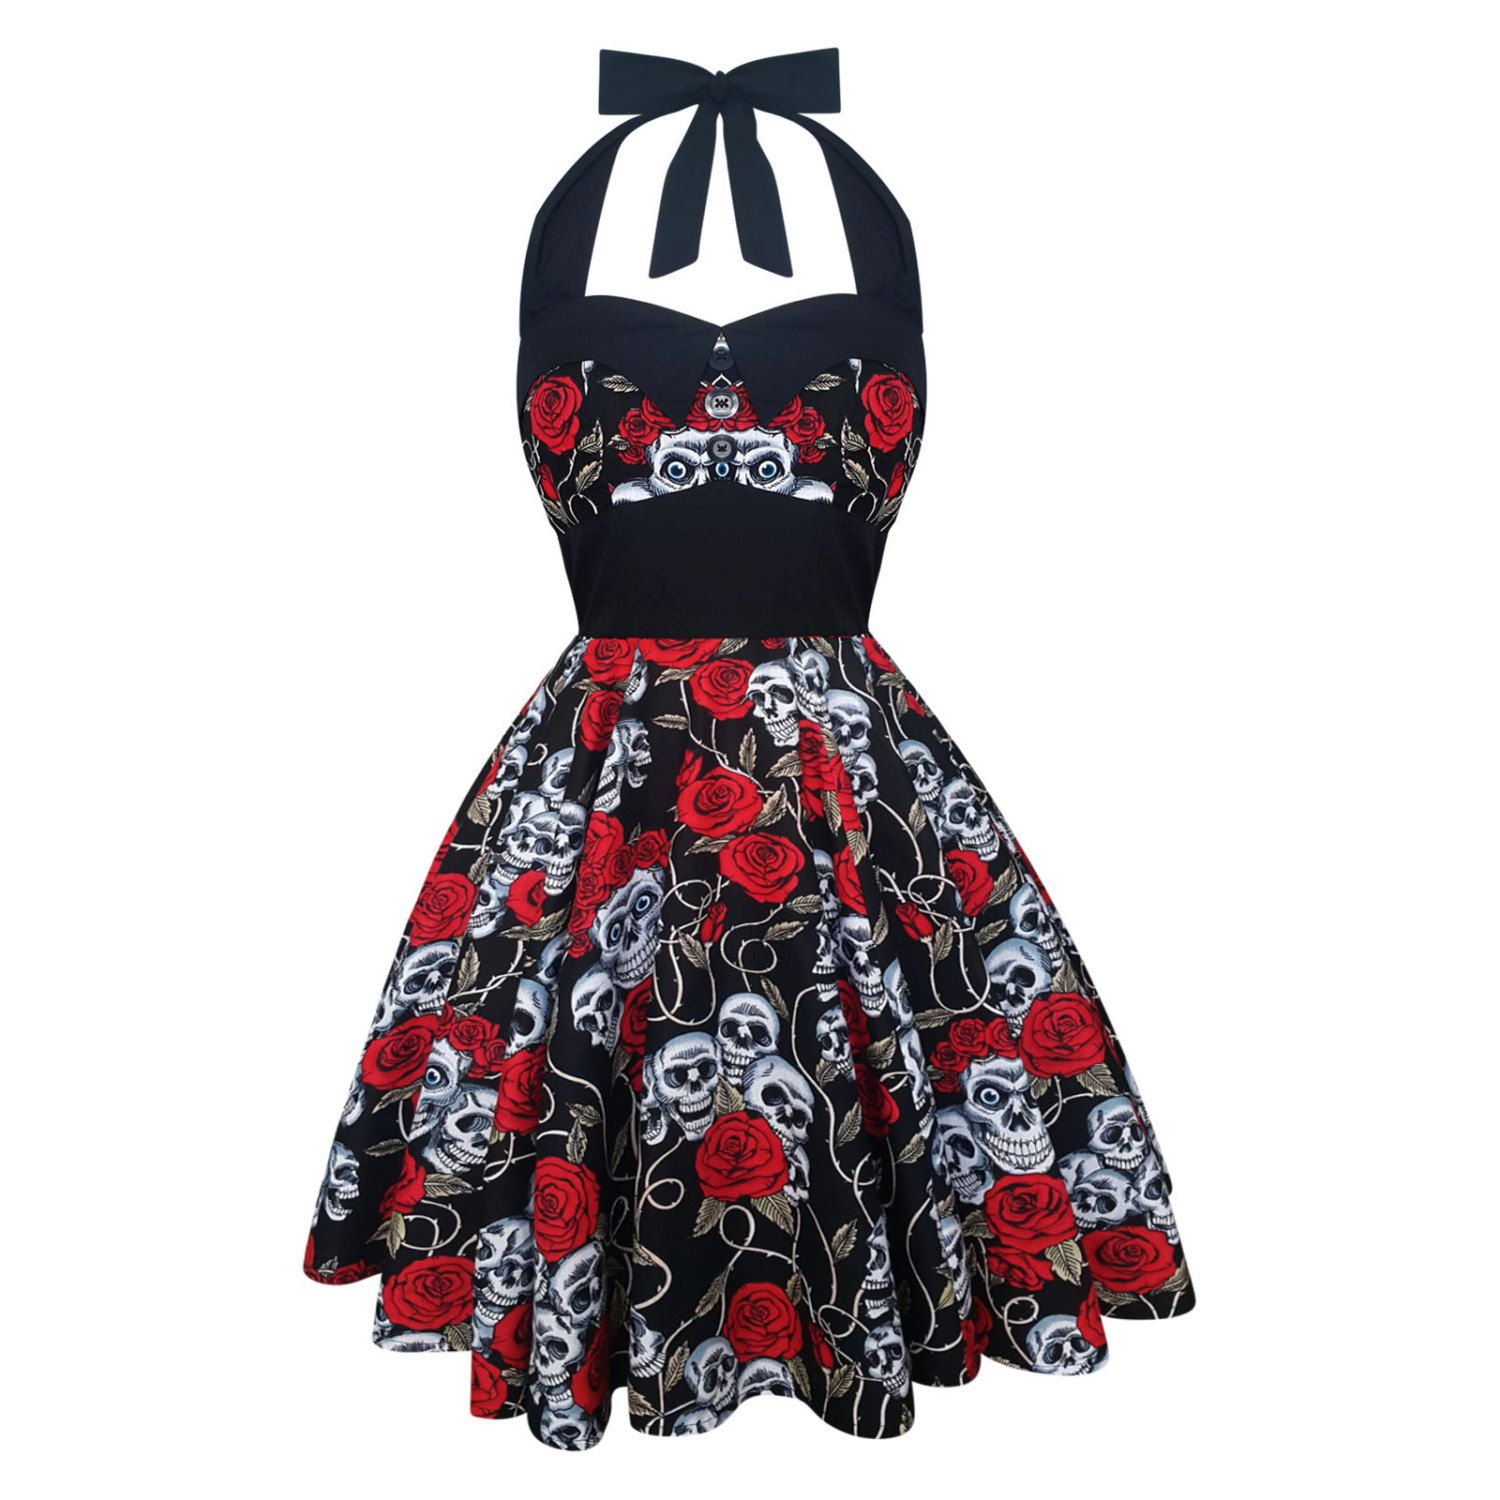 Hearts and Roses White Cherry Print Kids Swing Dress 1950s Rockabilly Girl